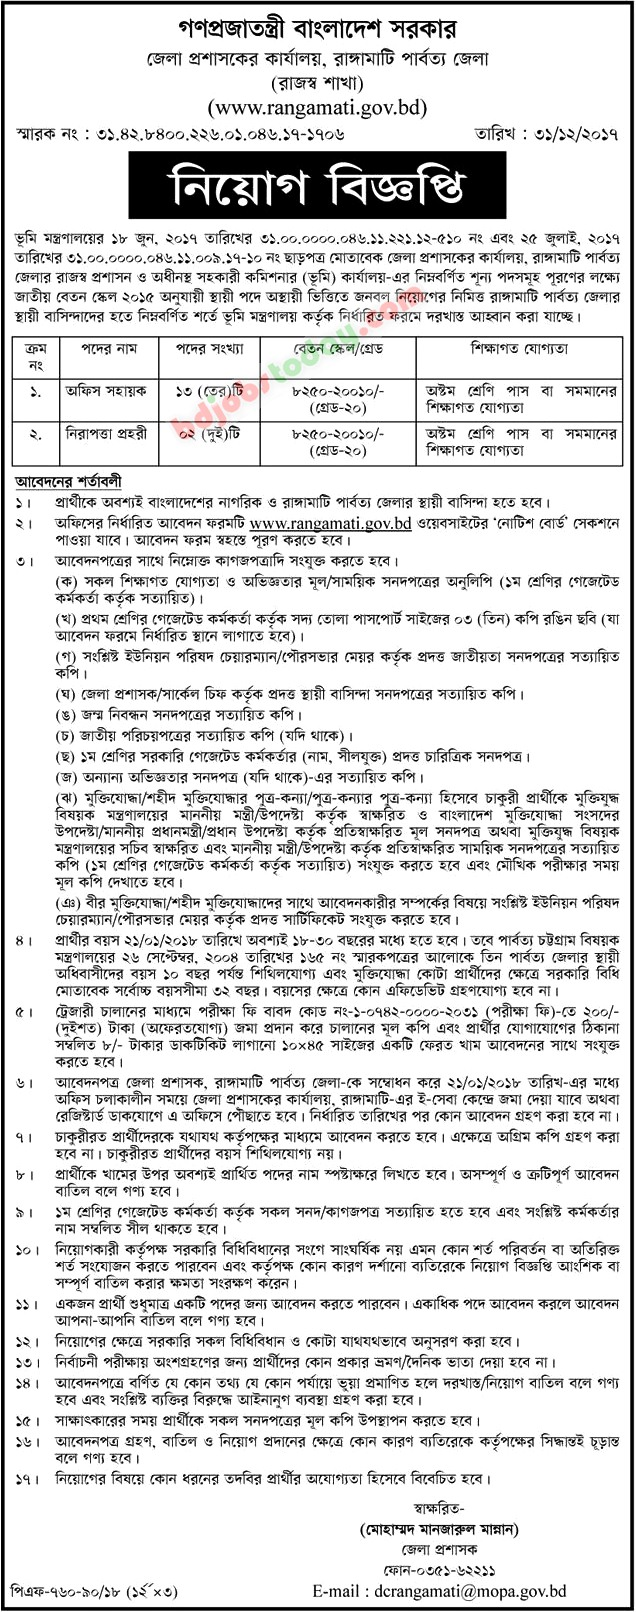 Office of District Commissioner, Rangamati Hill Tracks jobs